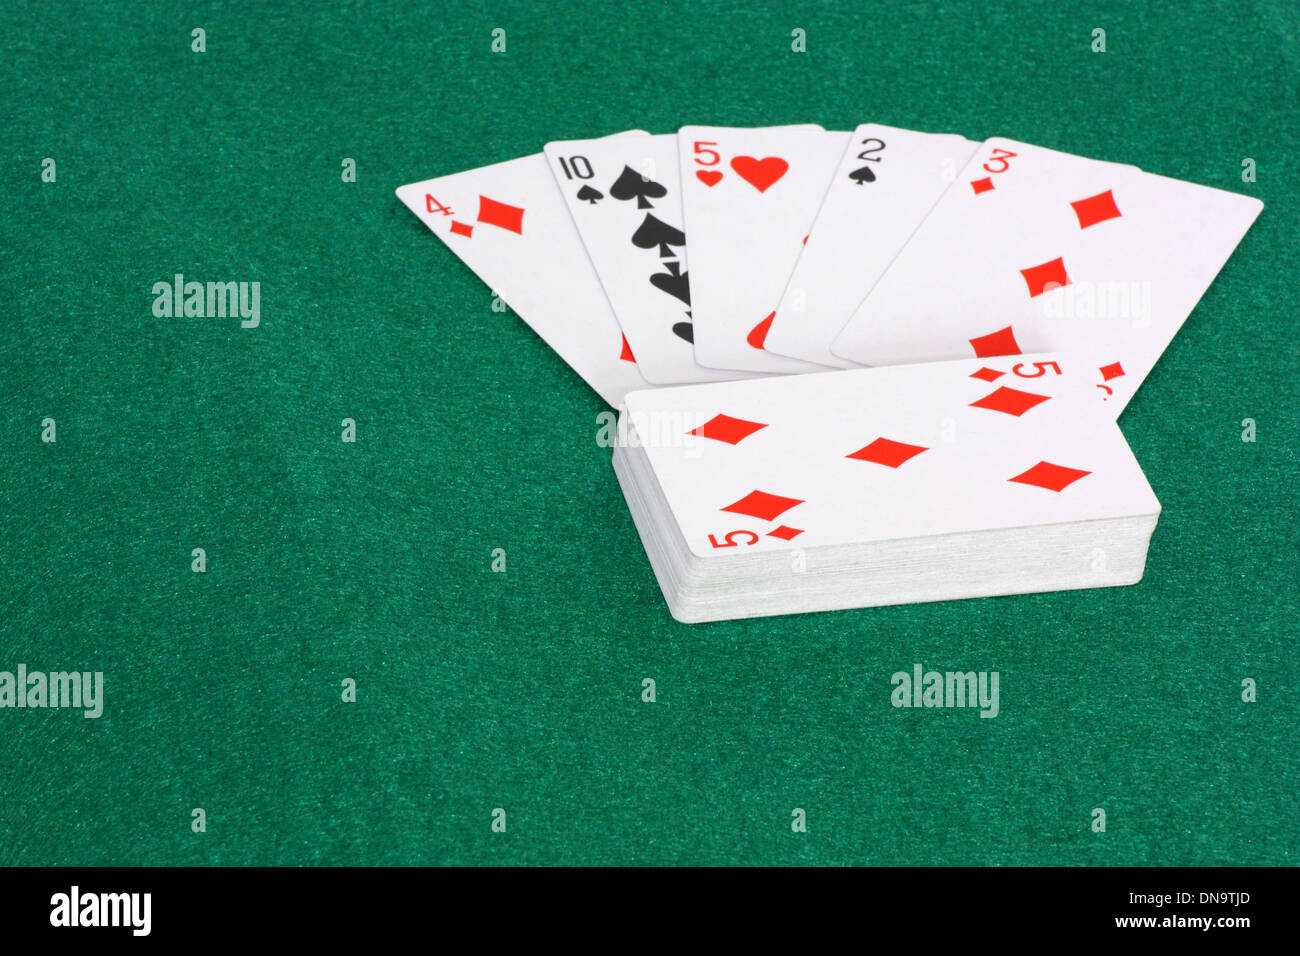 An image showing the concept of chance and luck with a deck of cards - Stock Image